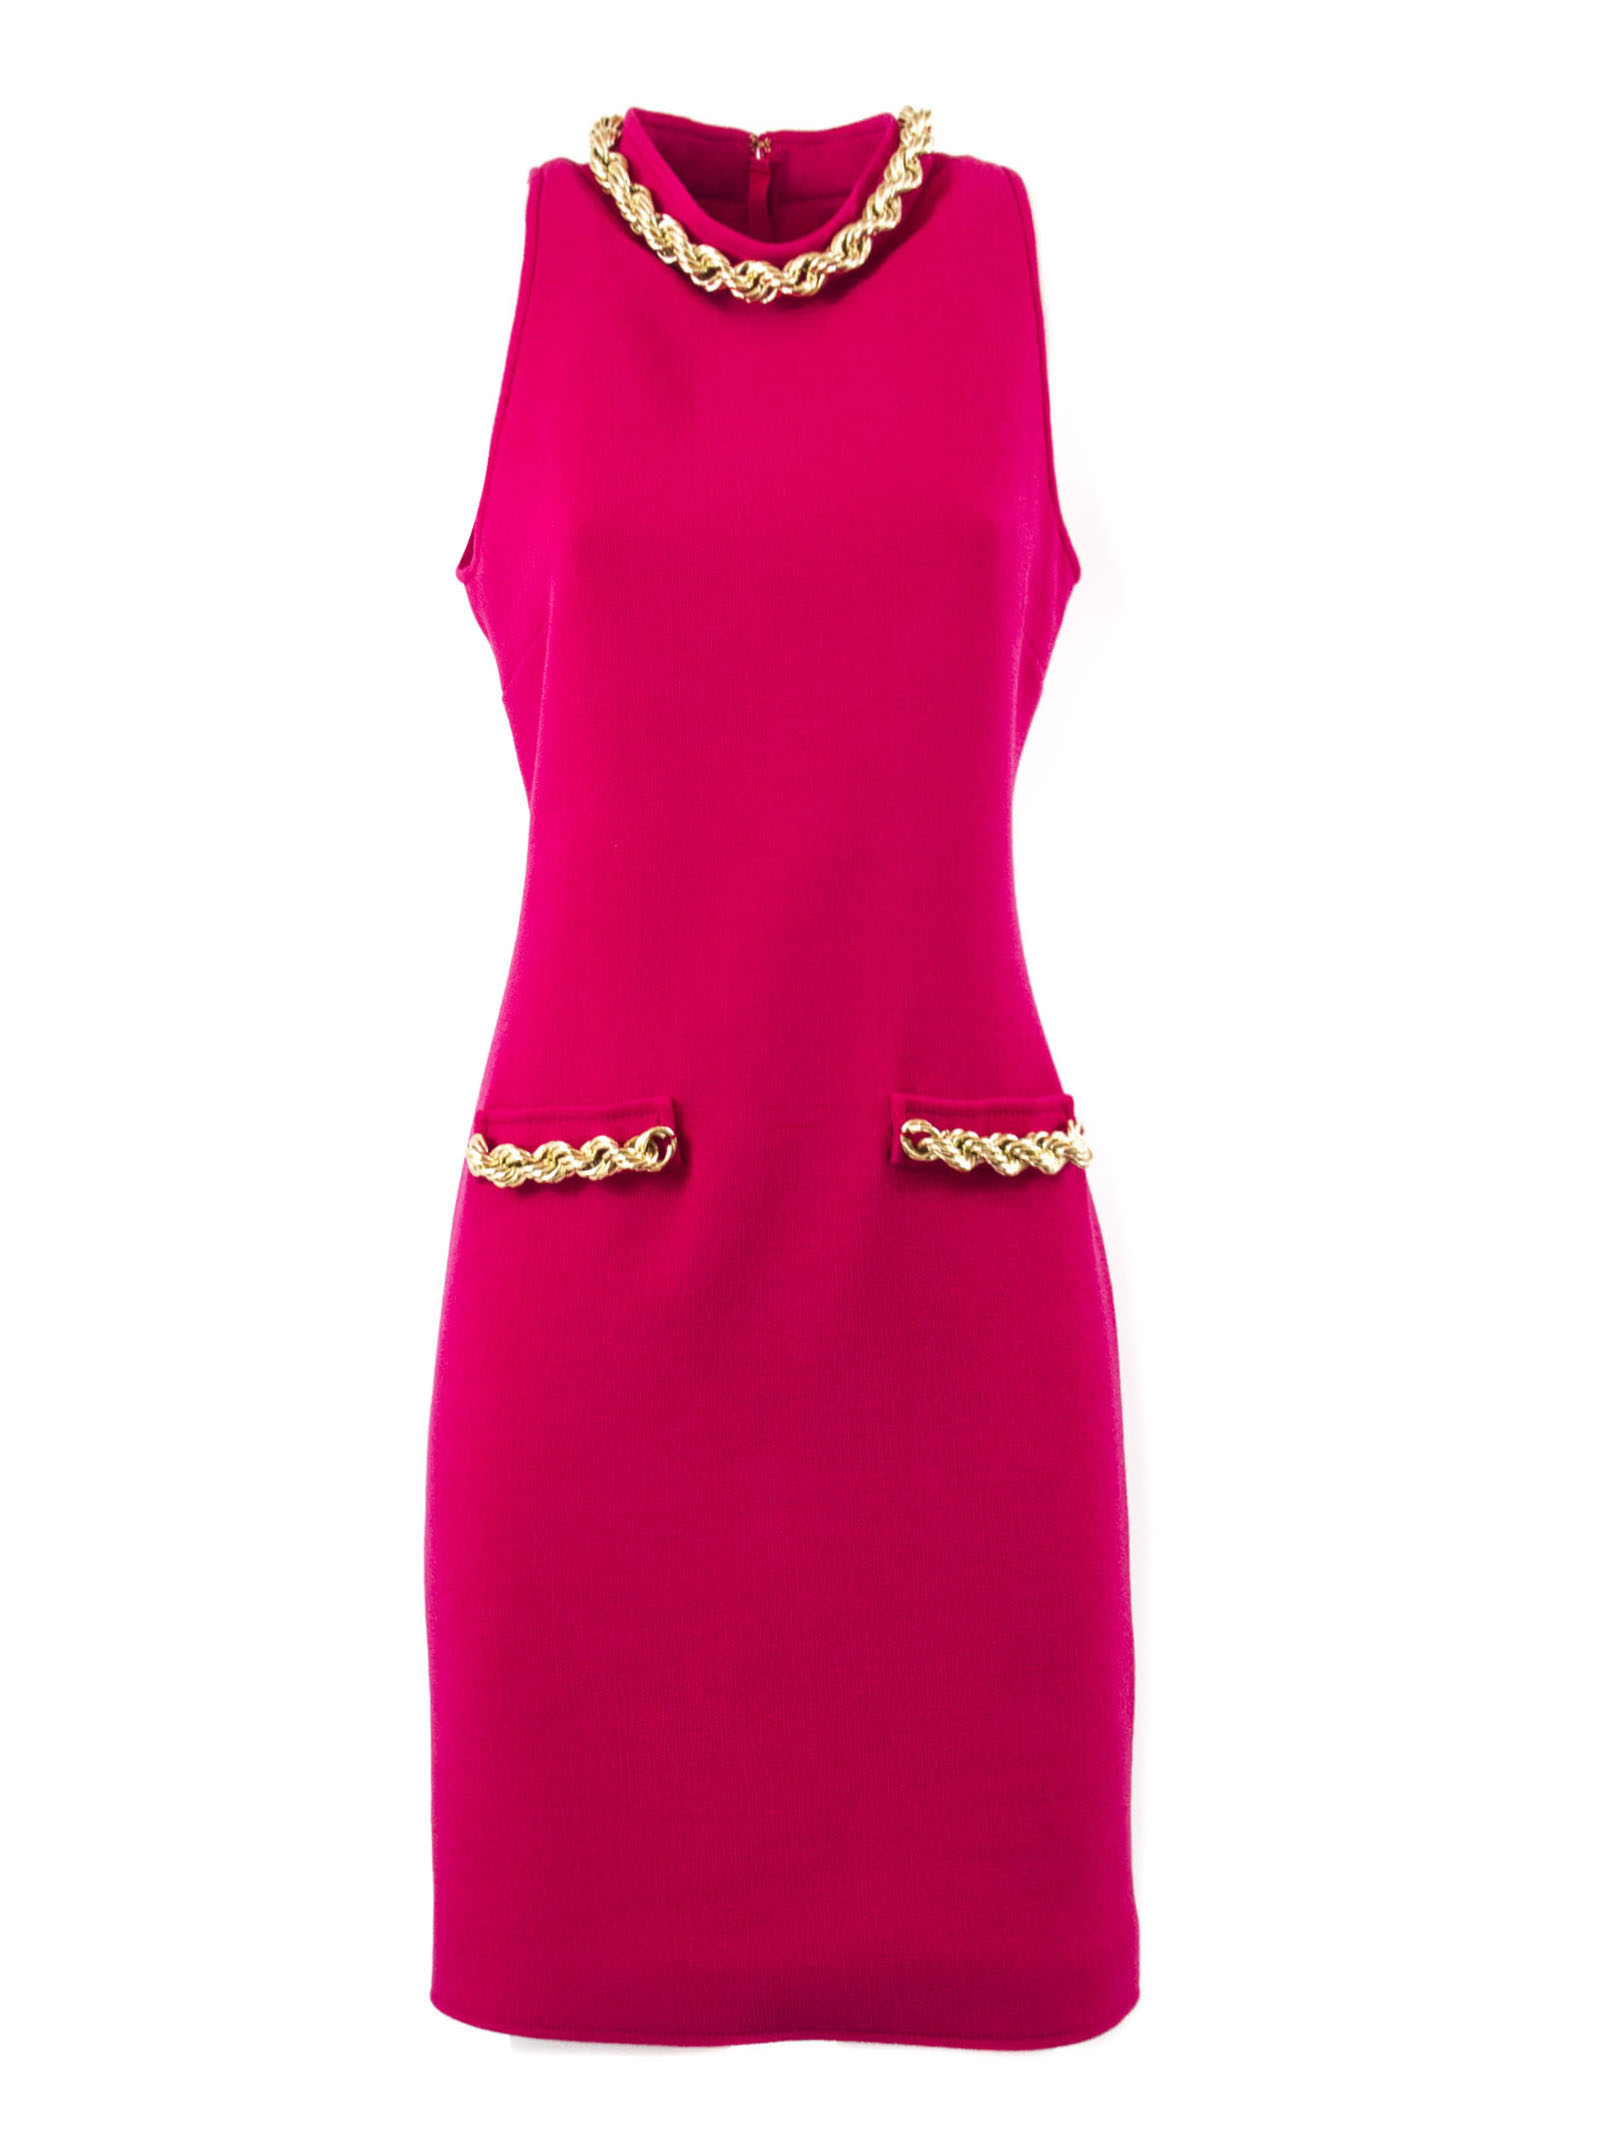 Moschino Fuchsia Virgin Wool Dress